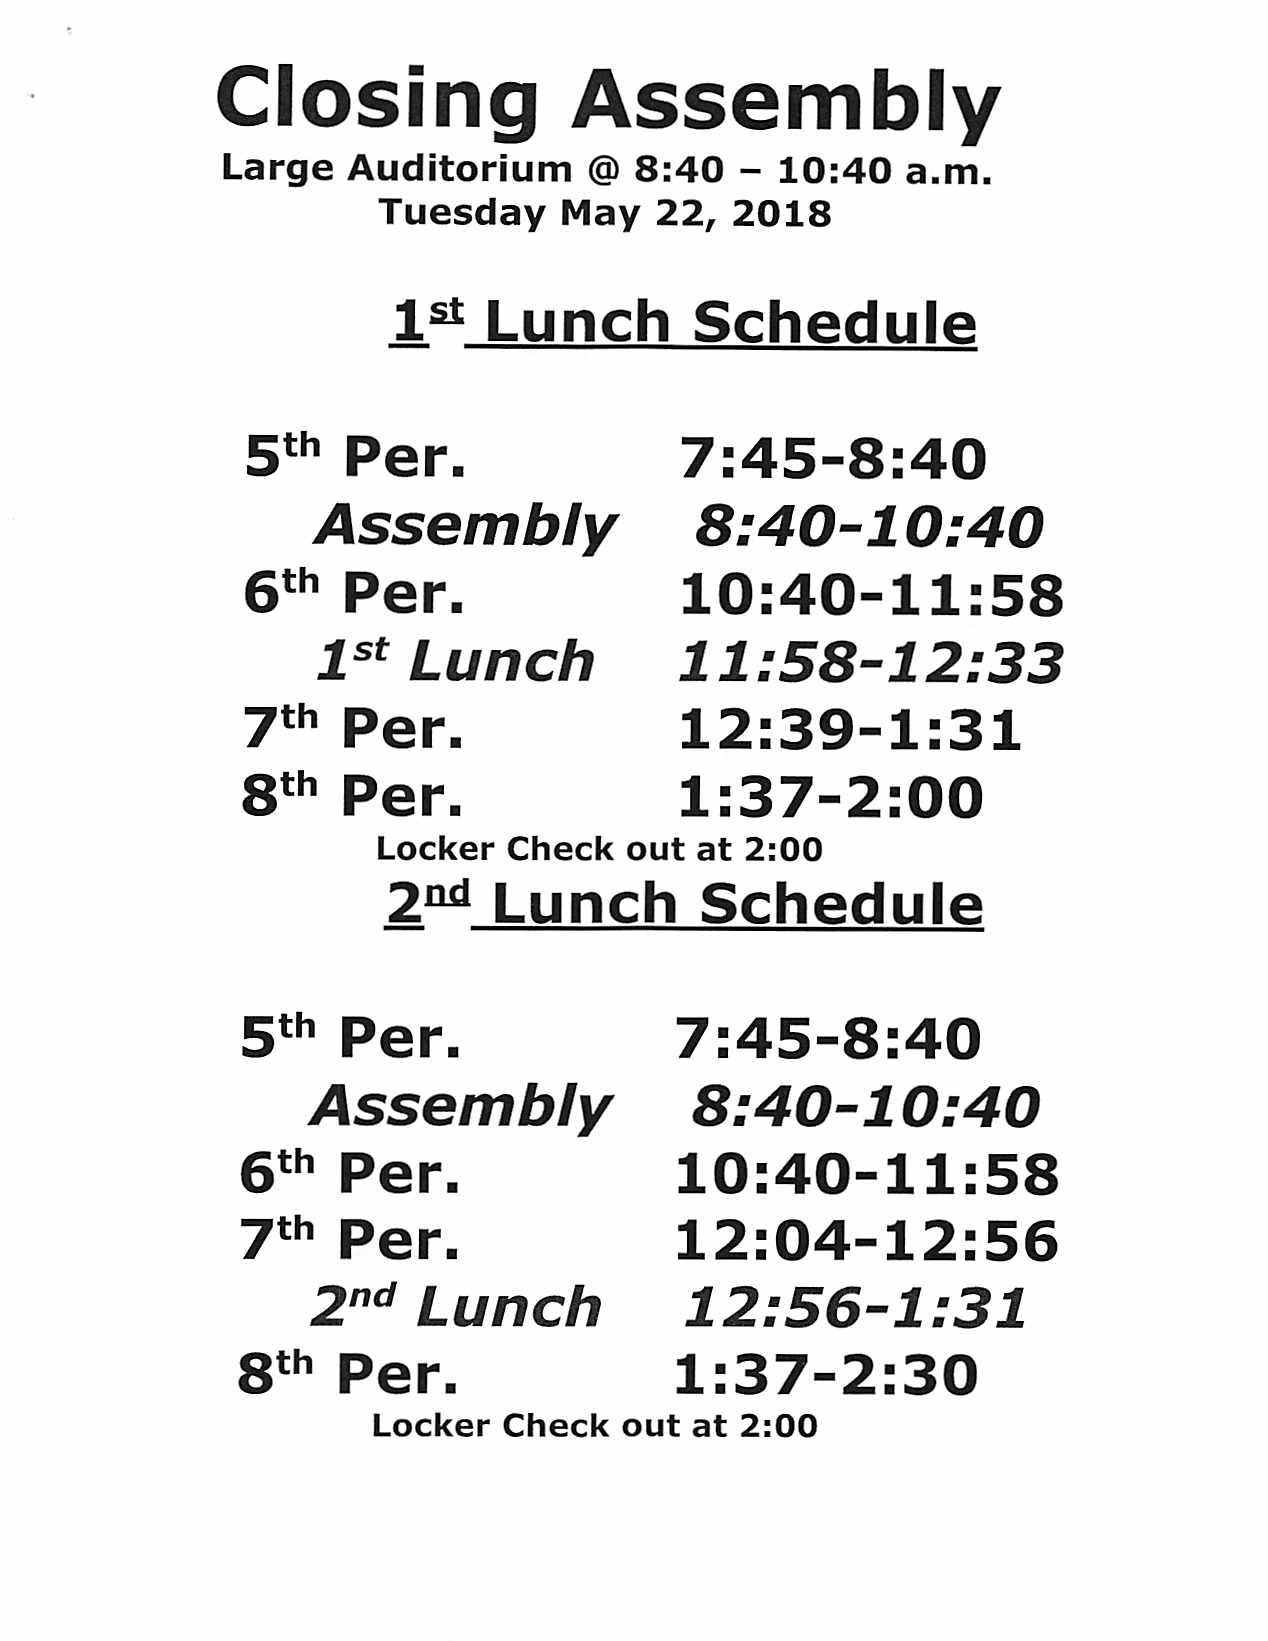 Tuesday Closing Assembly Schedule